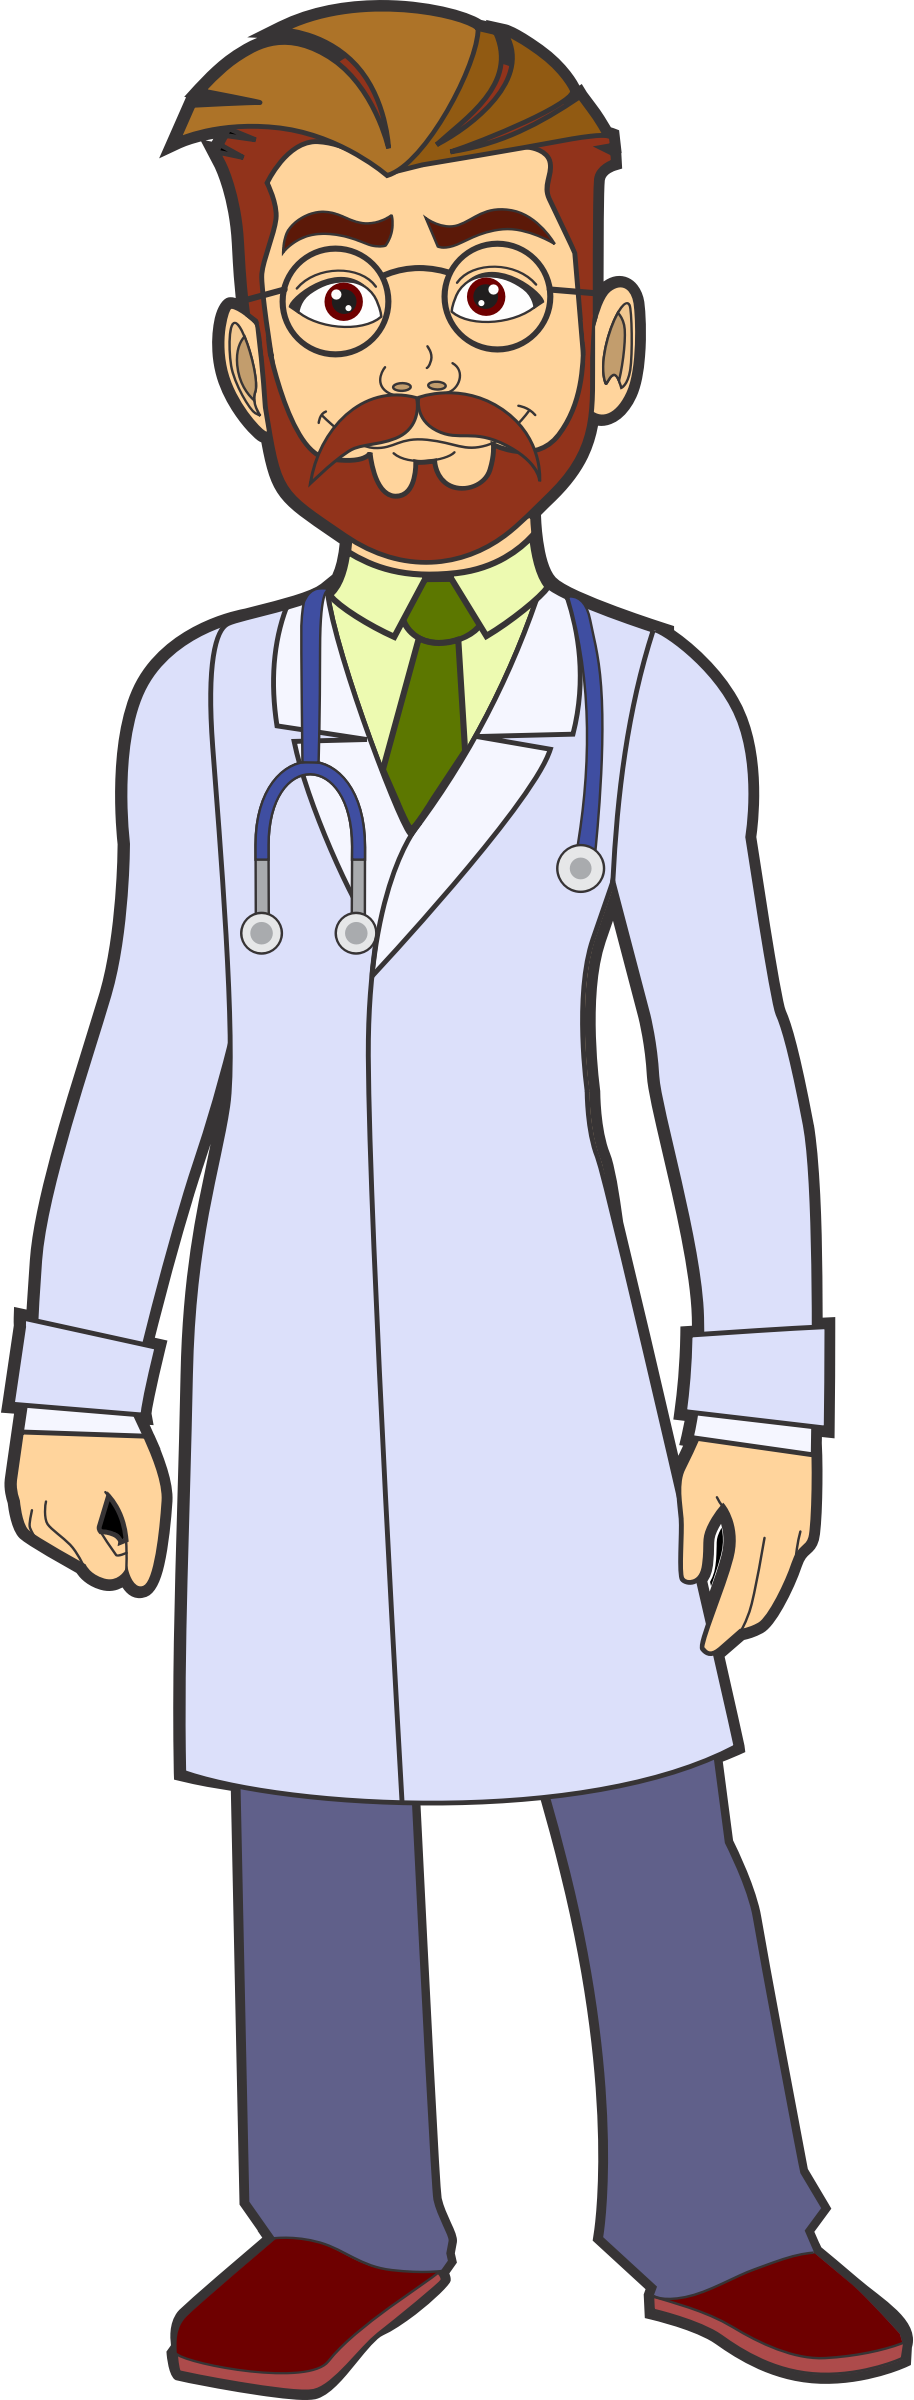 Doctor clipart clothing. Big image png